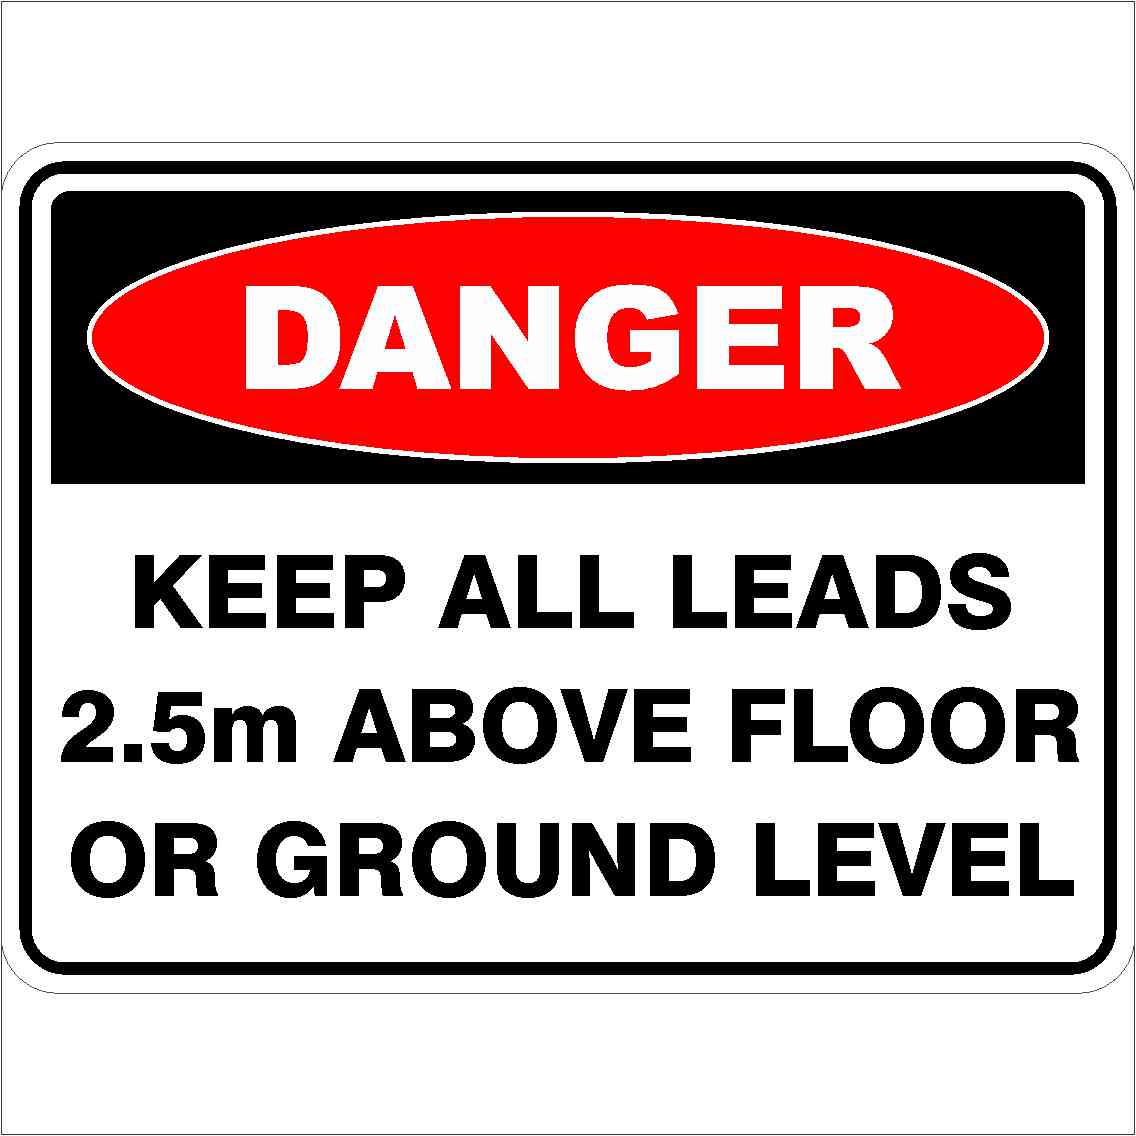 Danger Signs KEEP ALL LEADS 2.5M ABOVE FLOOR OR GROUND LEVEL